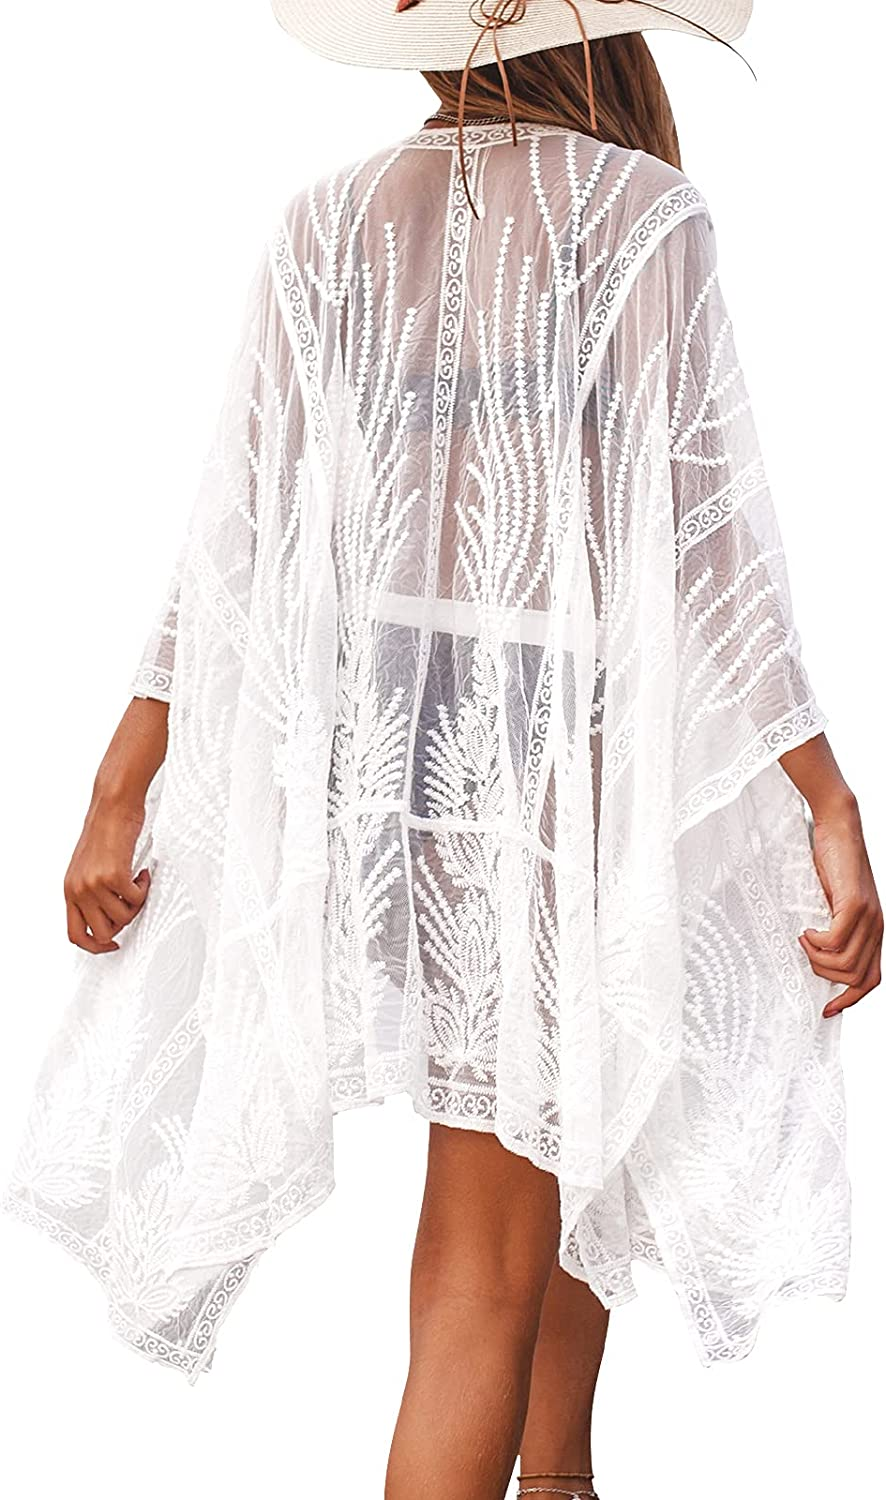 CUPSHE Women's White Sheer Embroidery Kimono Long Sleeves Cover Up